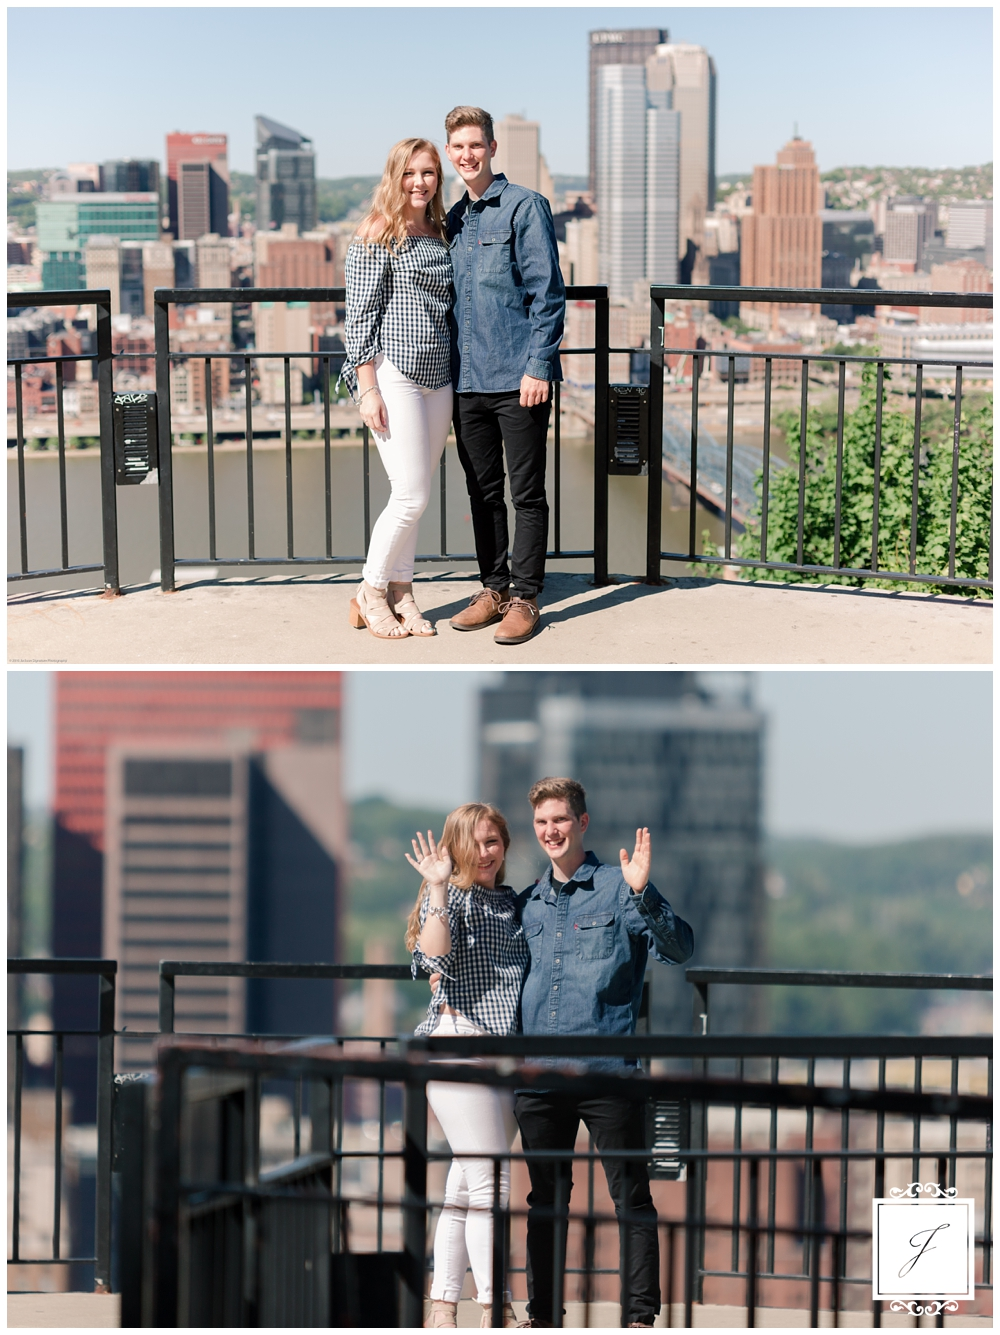 Rachael and Nate's Mount Washington Proposal by Jackson Signature Photography a Pittsburgh Wedding Photographer